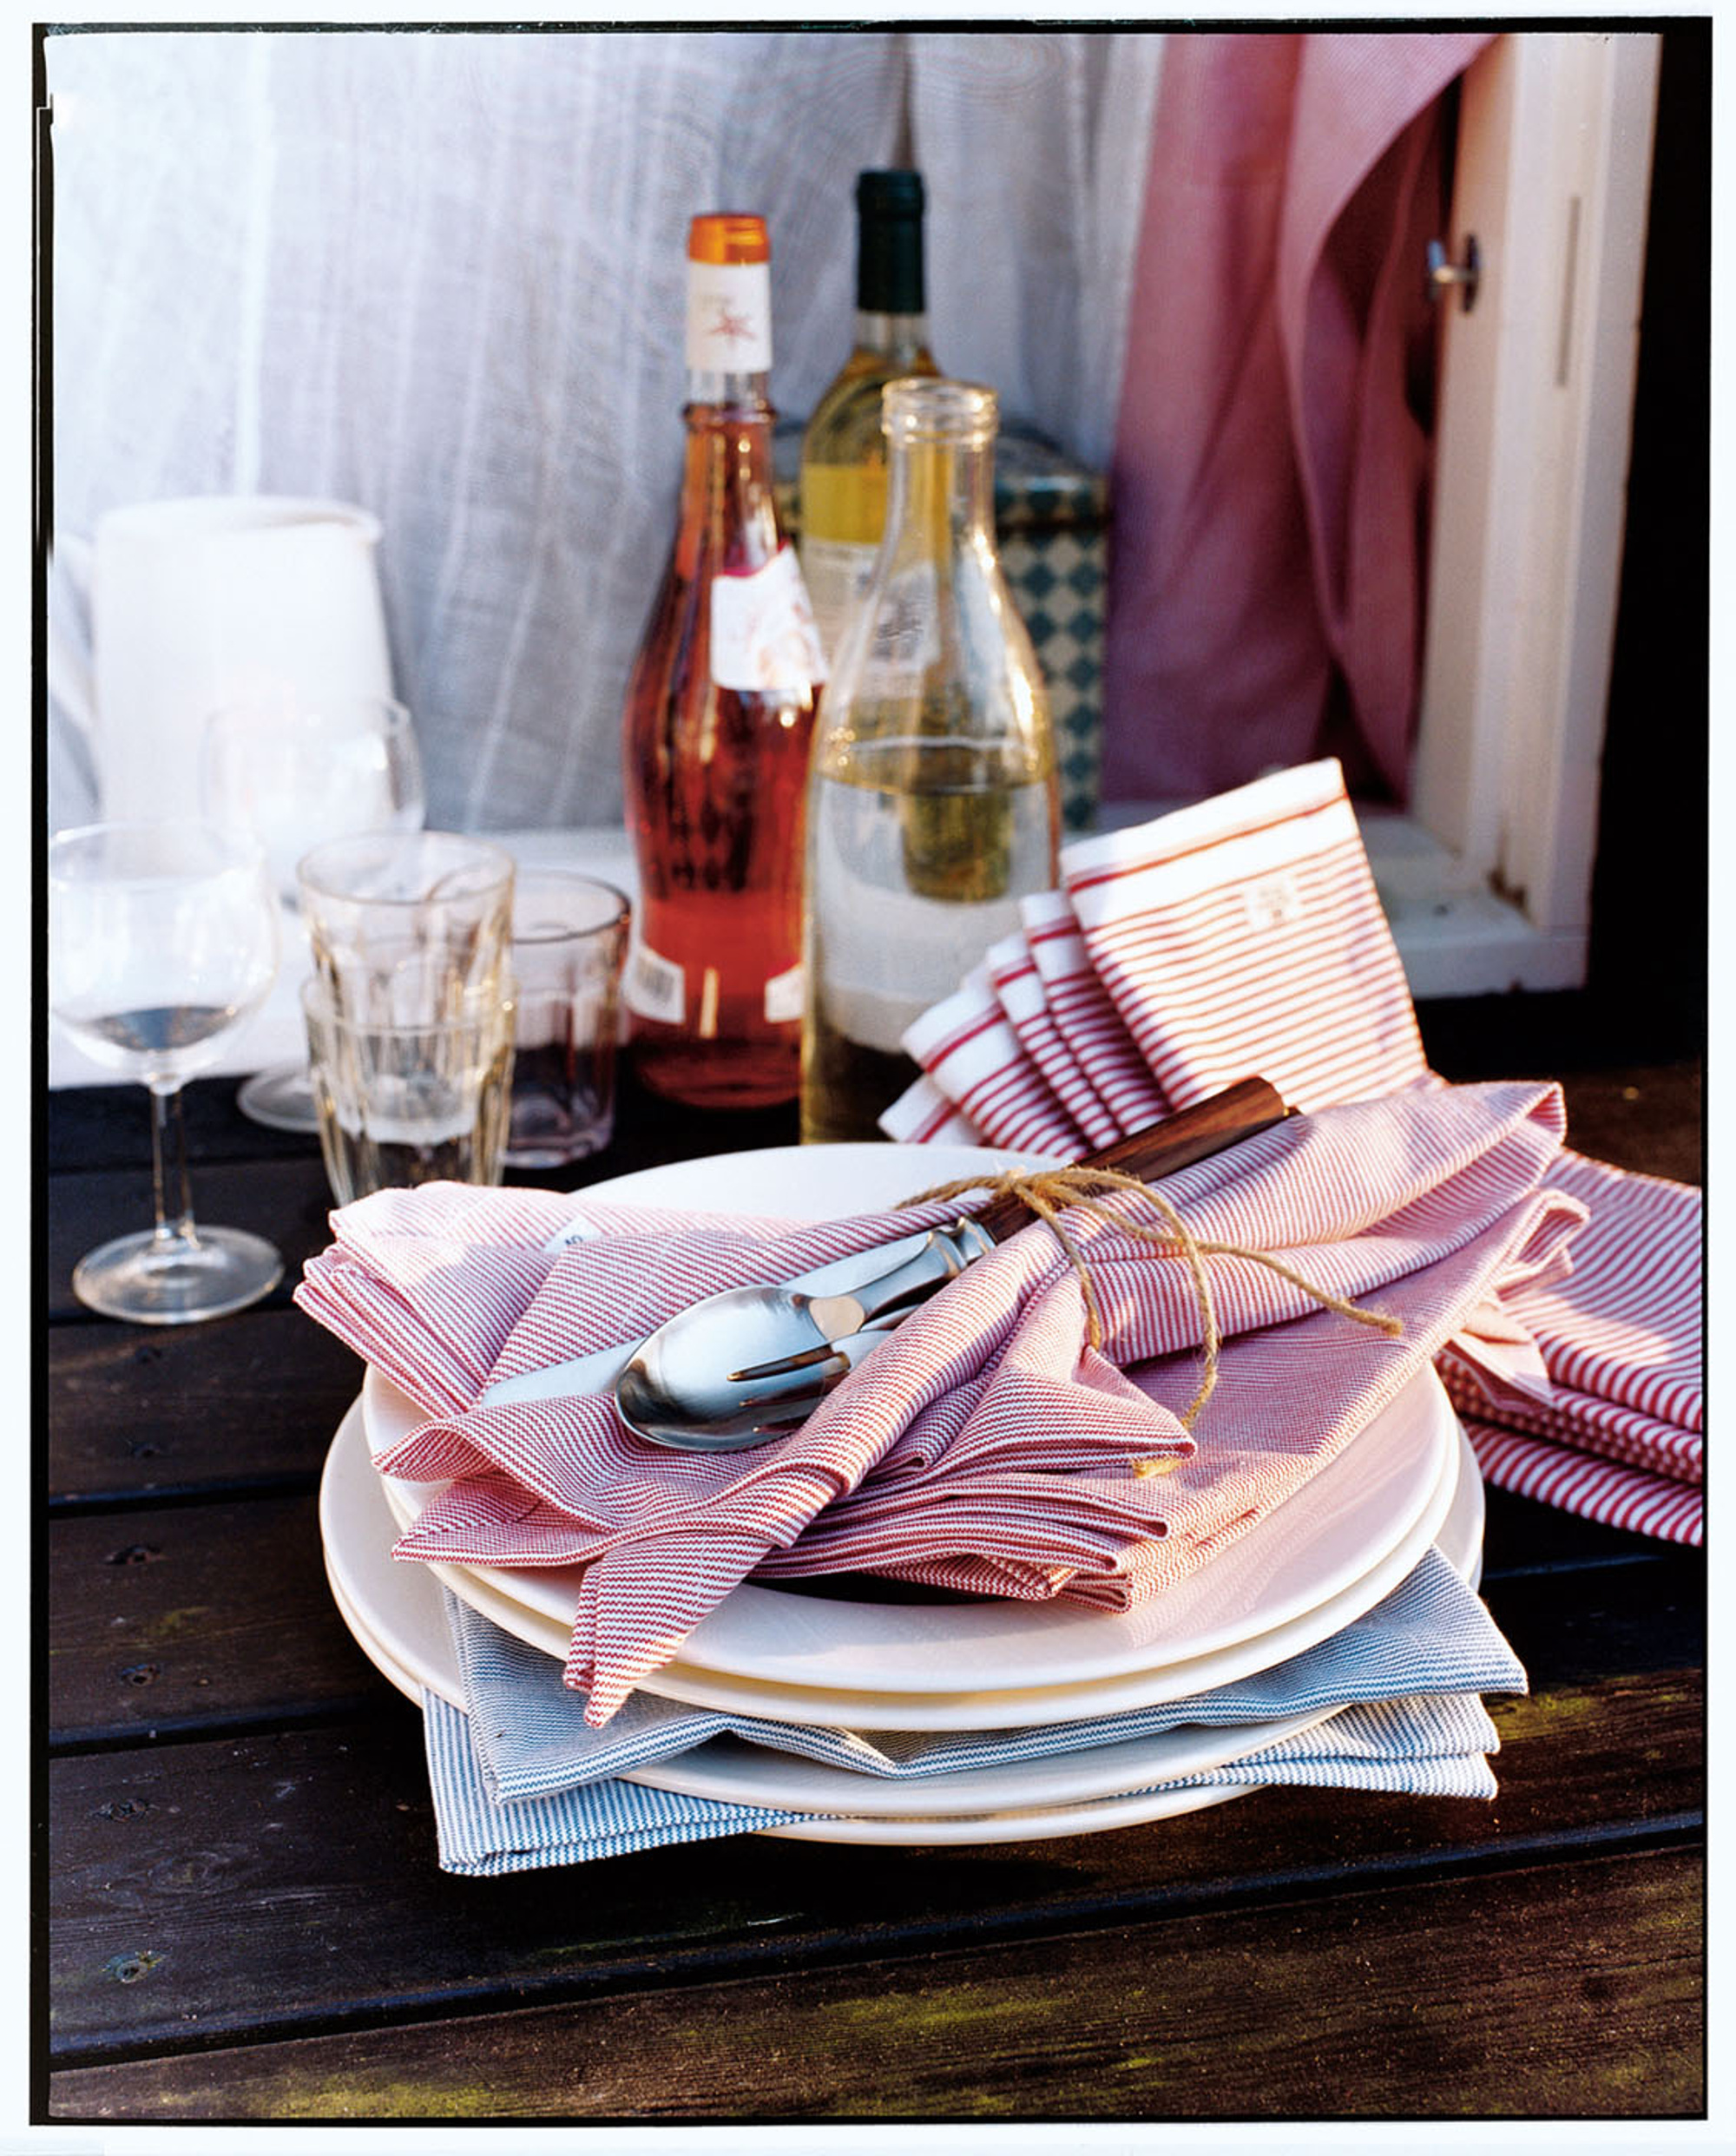 Oxford Red/White Striped Napkin